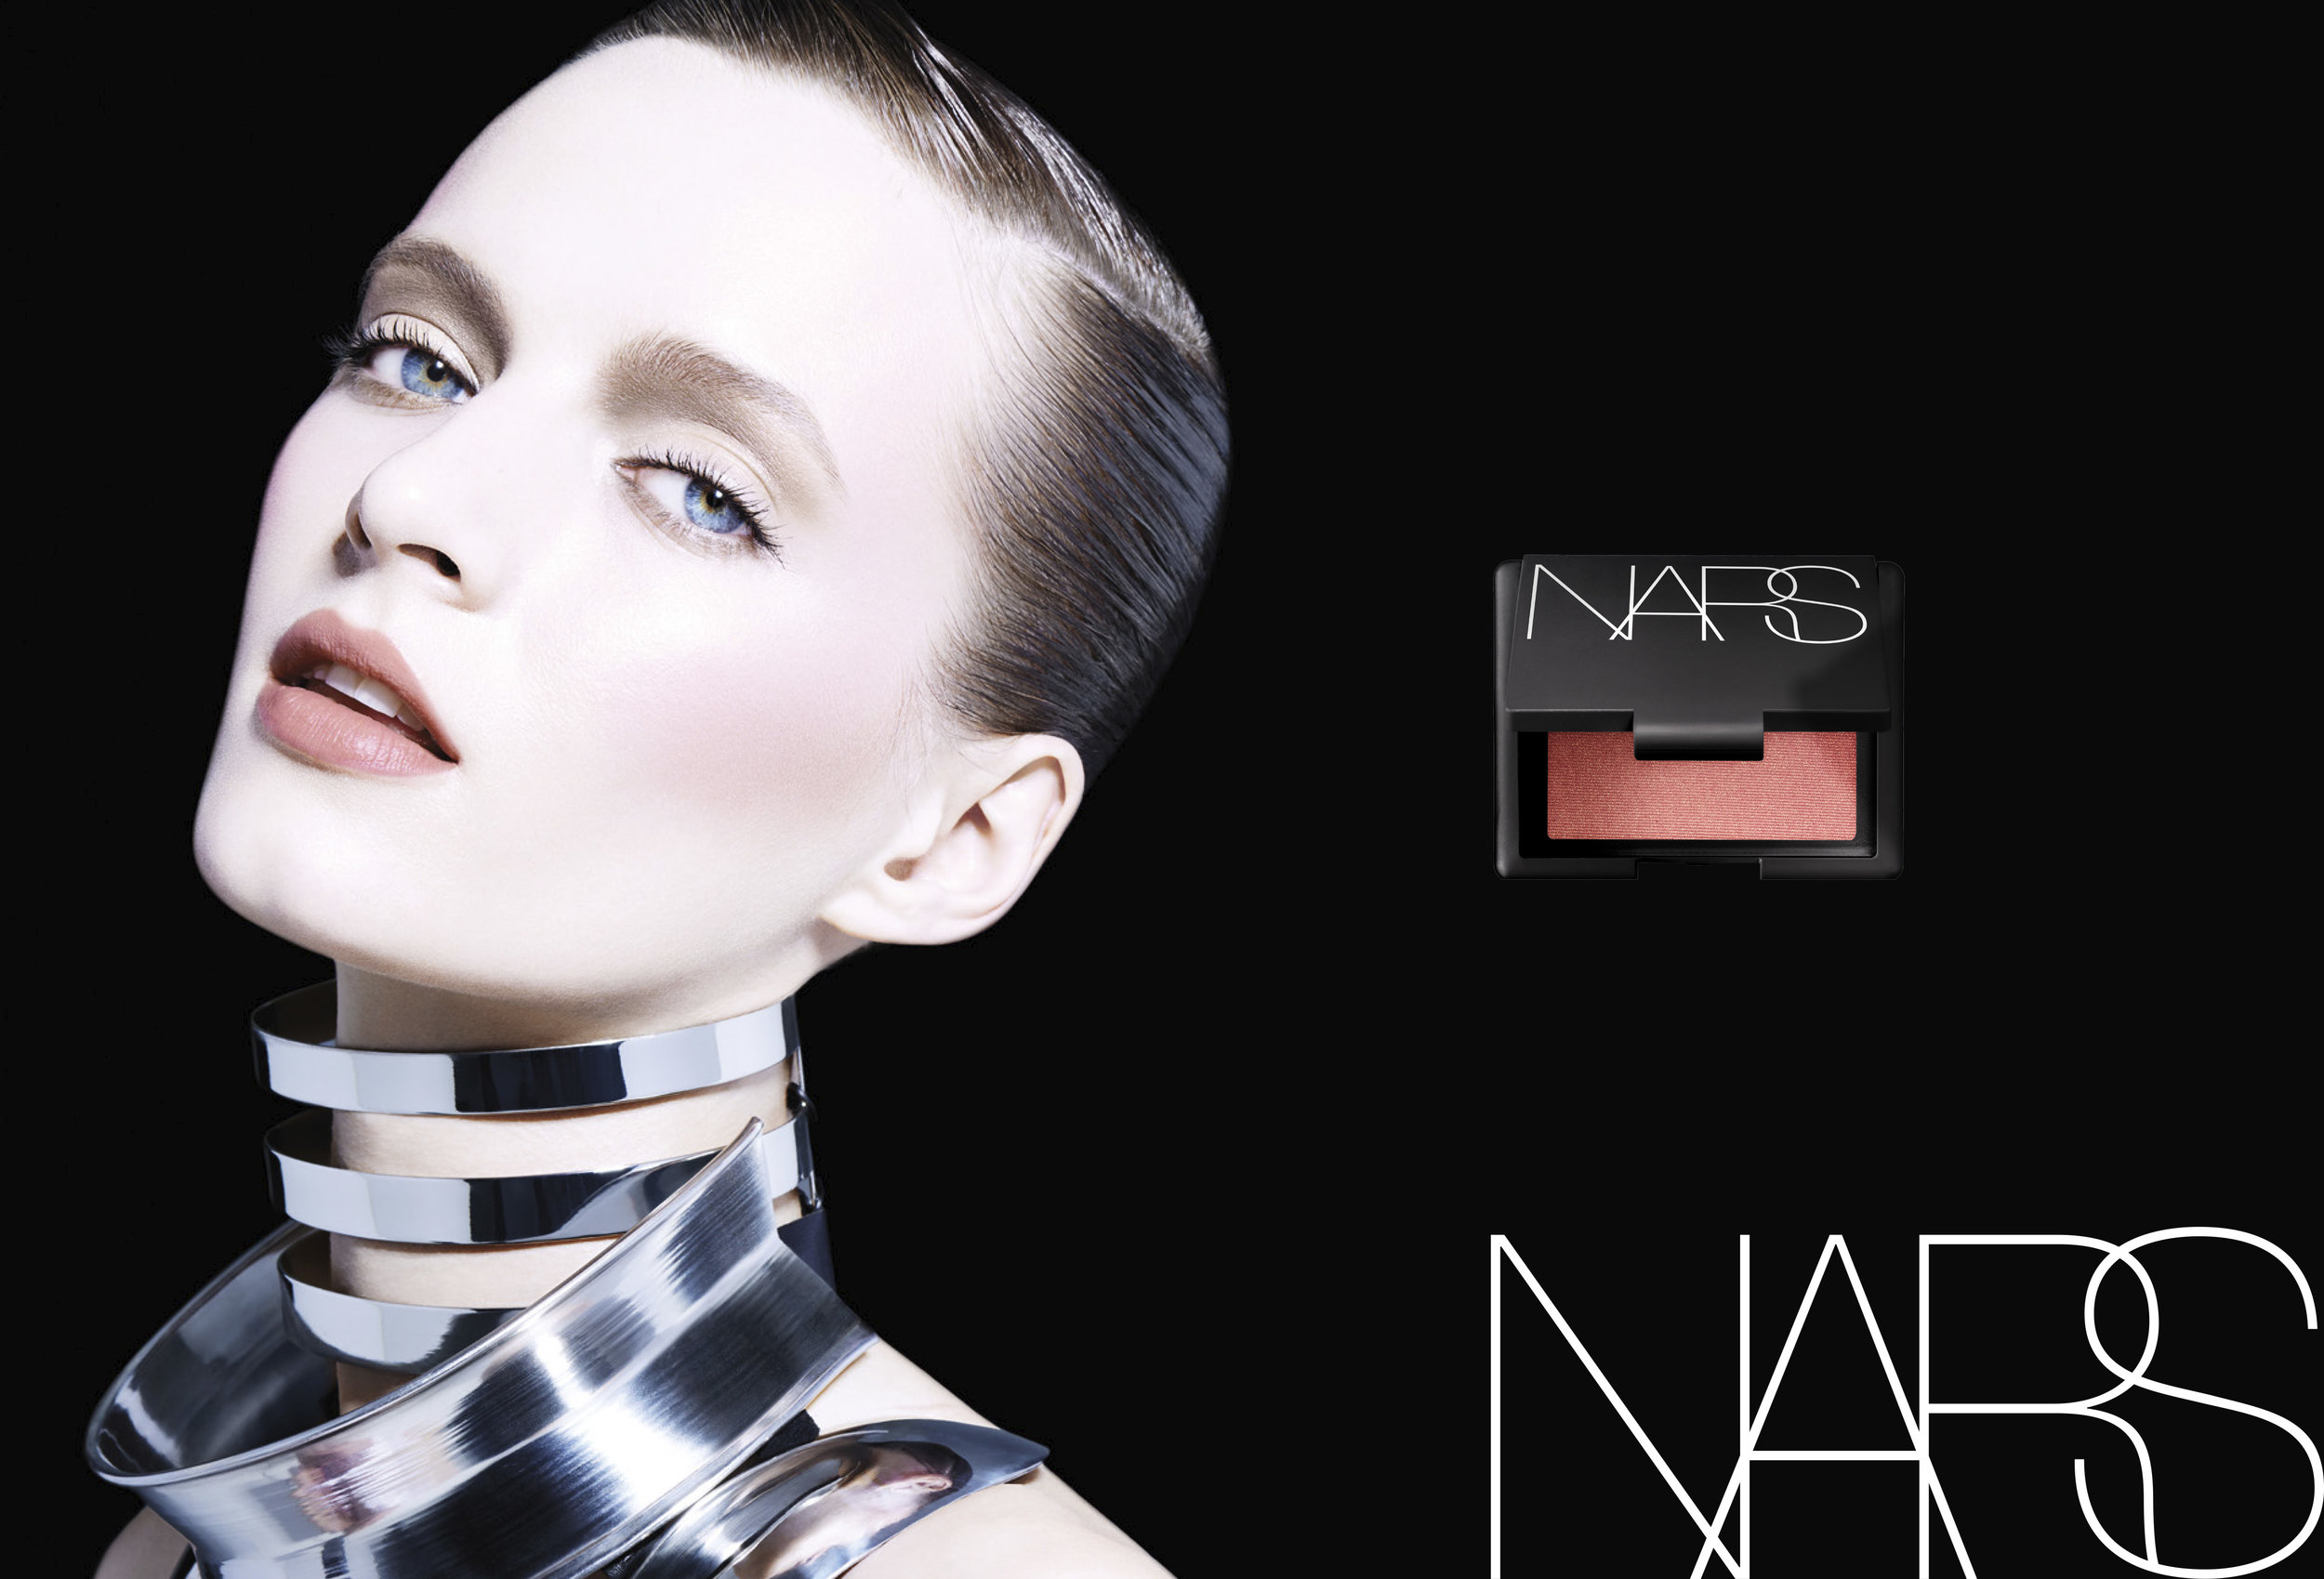 150320_Nars_FW15_Layout_Final-9.jpg